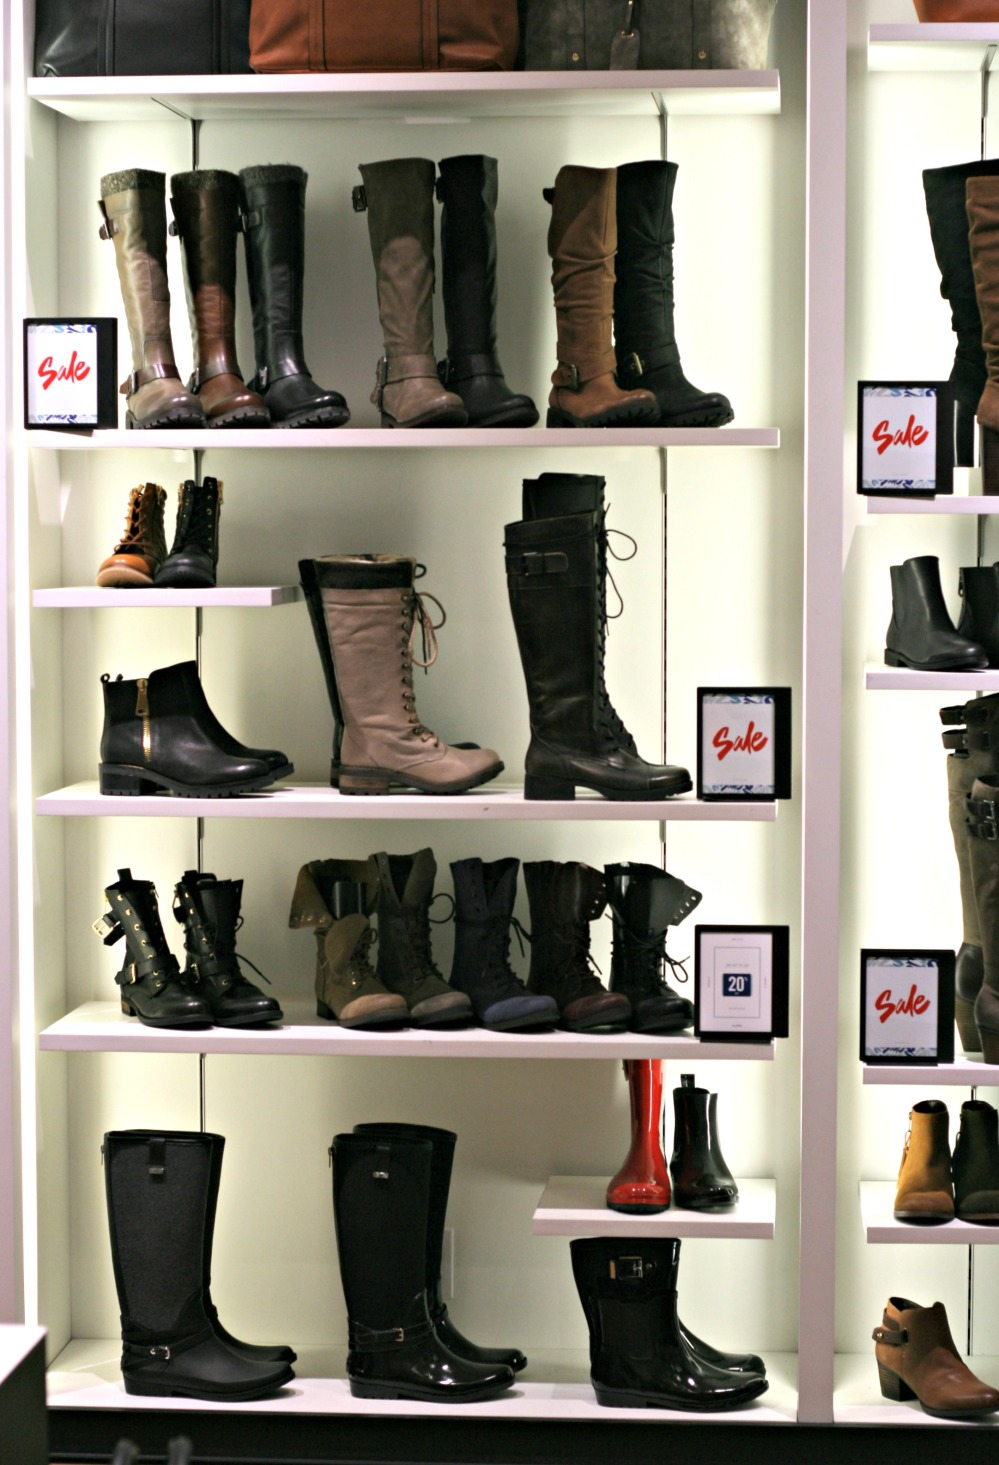 aldo wall of boots